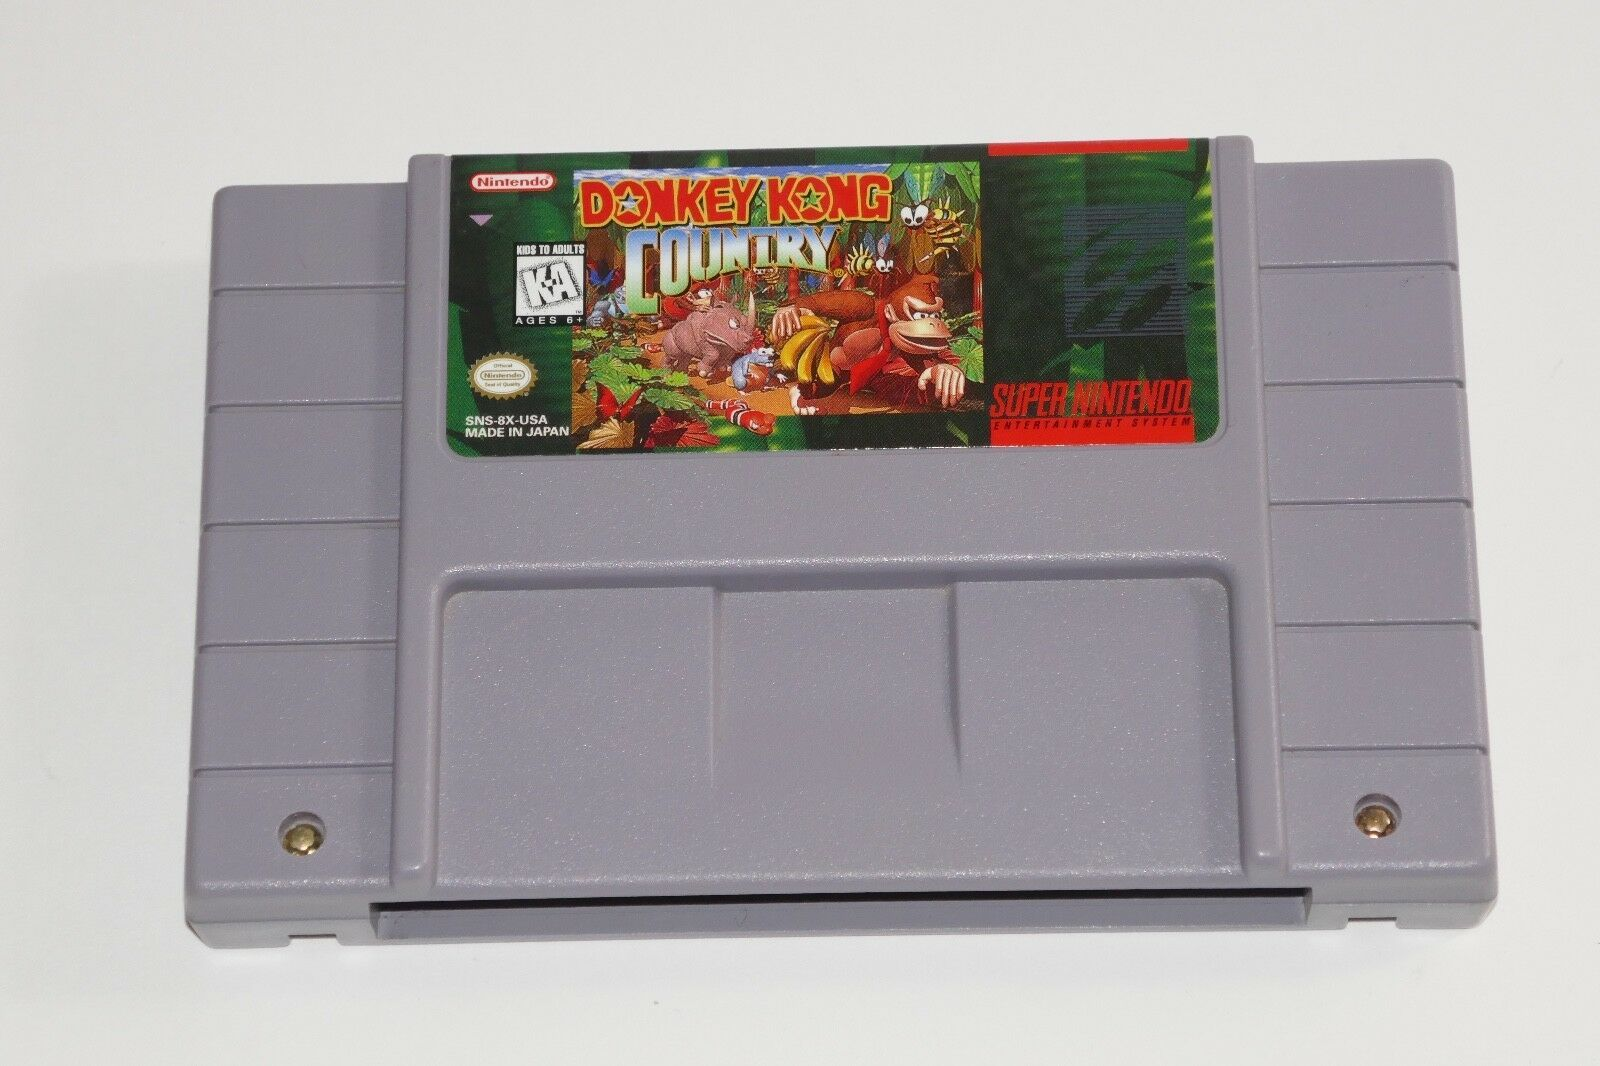 Primary image for  Donkey Kong Country (Super Nintendo Entertainment System, 1994)